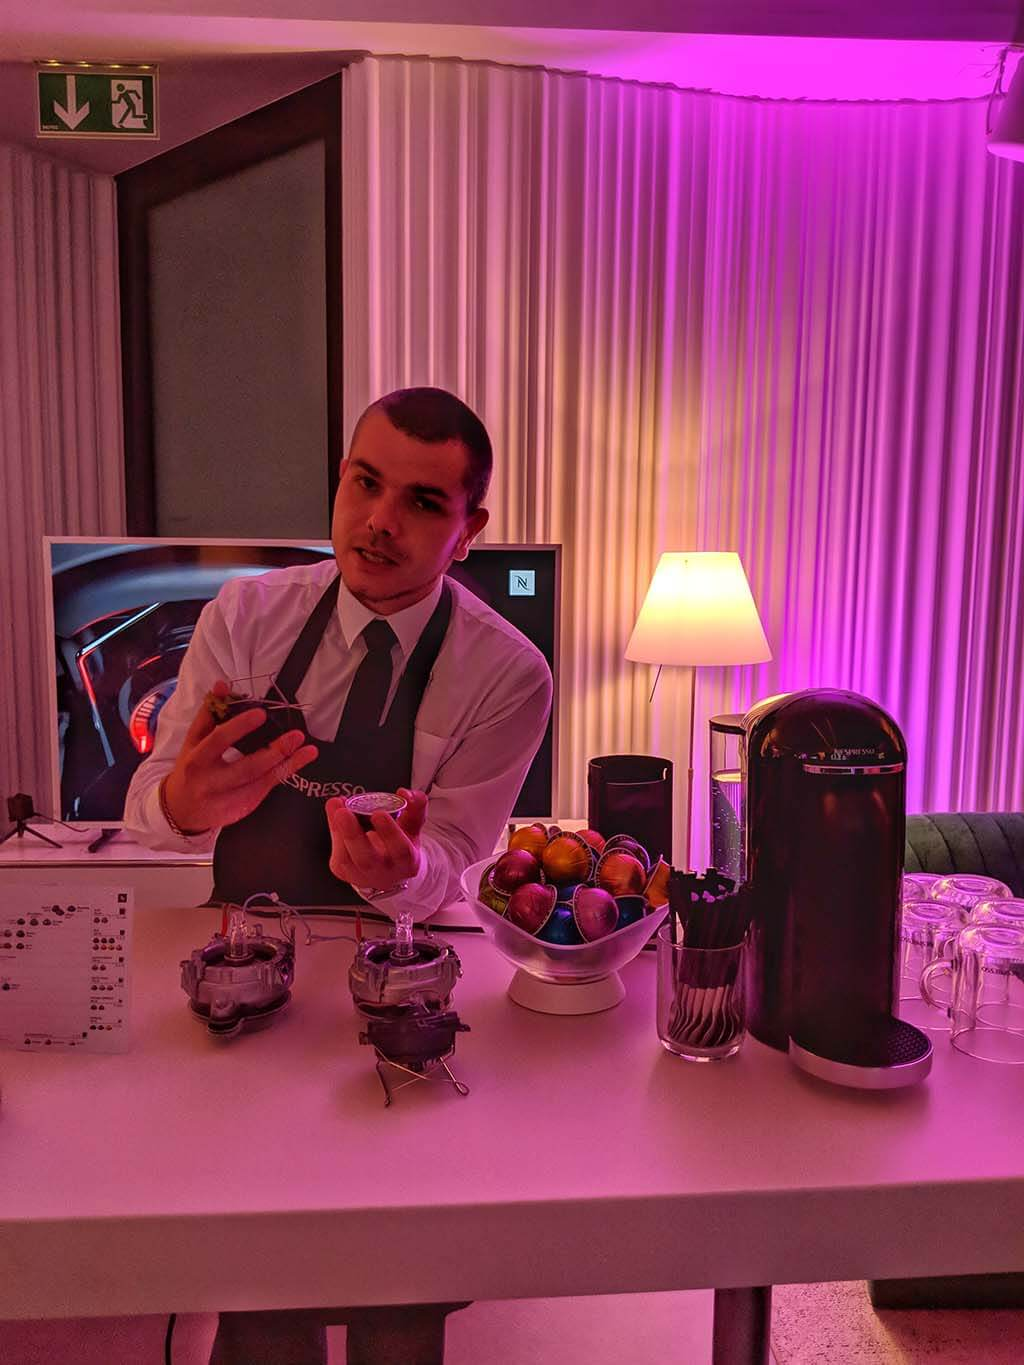 Explaining the new Nespresso Vertuo System